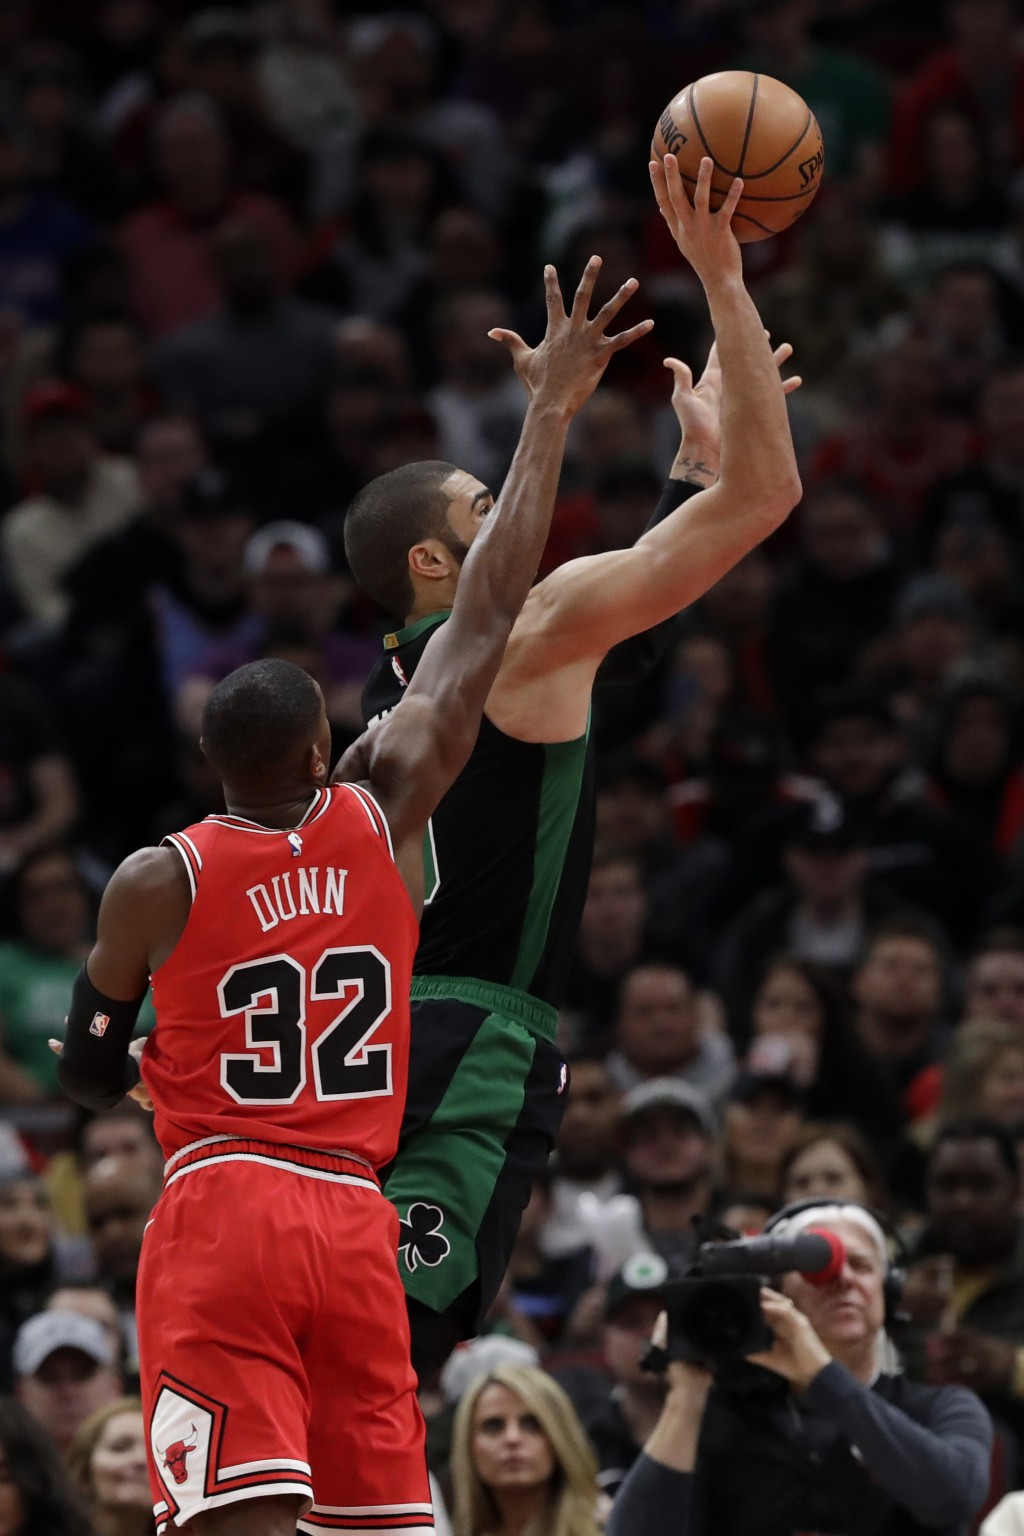 Boston Celtics forward Jayson Tatum, right, goes up for a shot past Chicago Bulls guard Kris Dunn during the first half of an NBA basketball game in C...